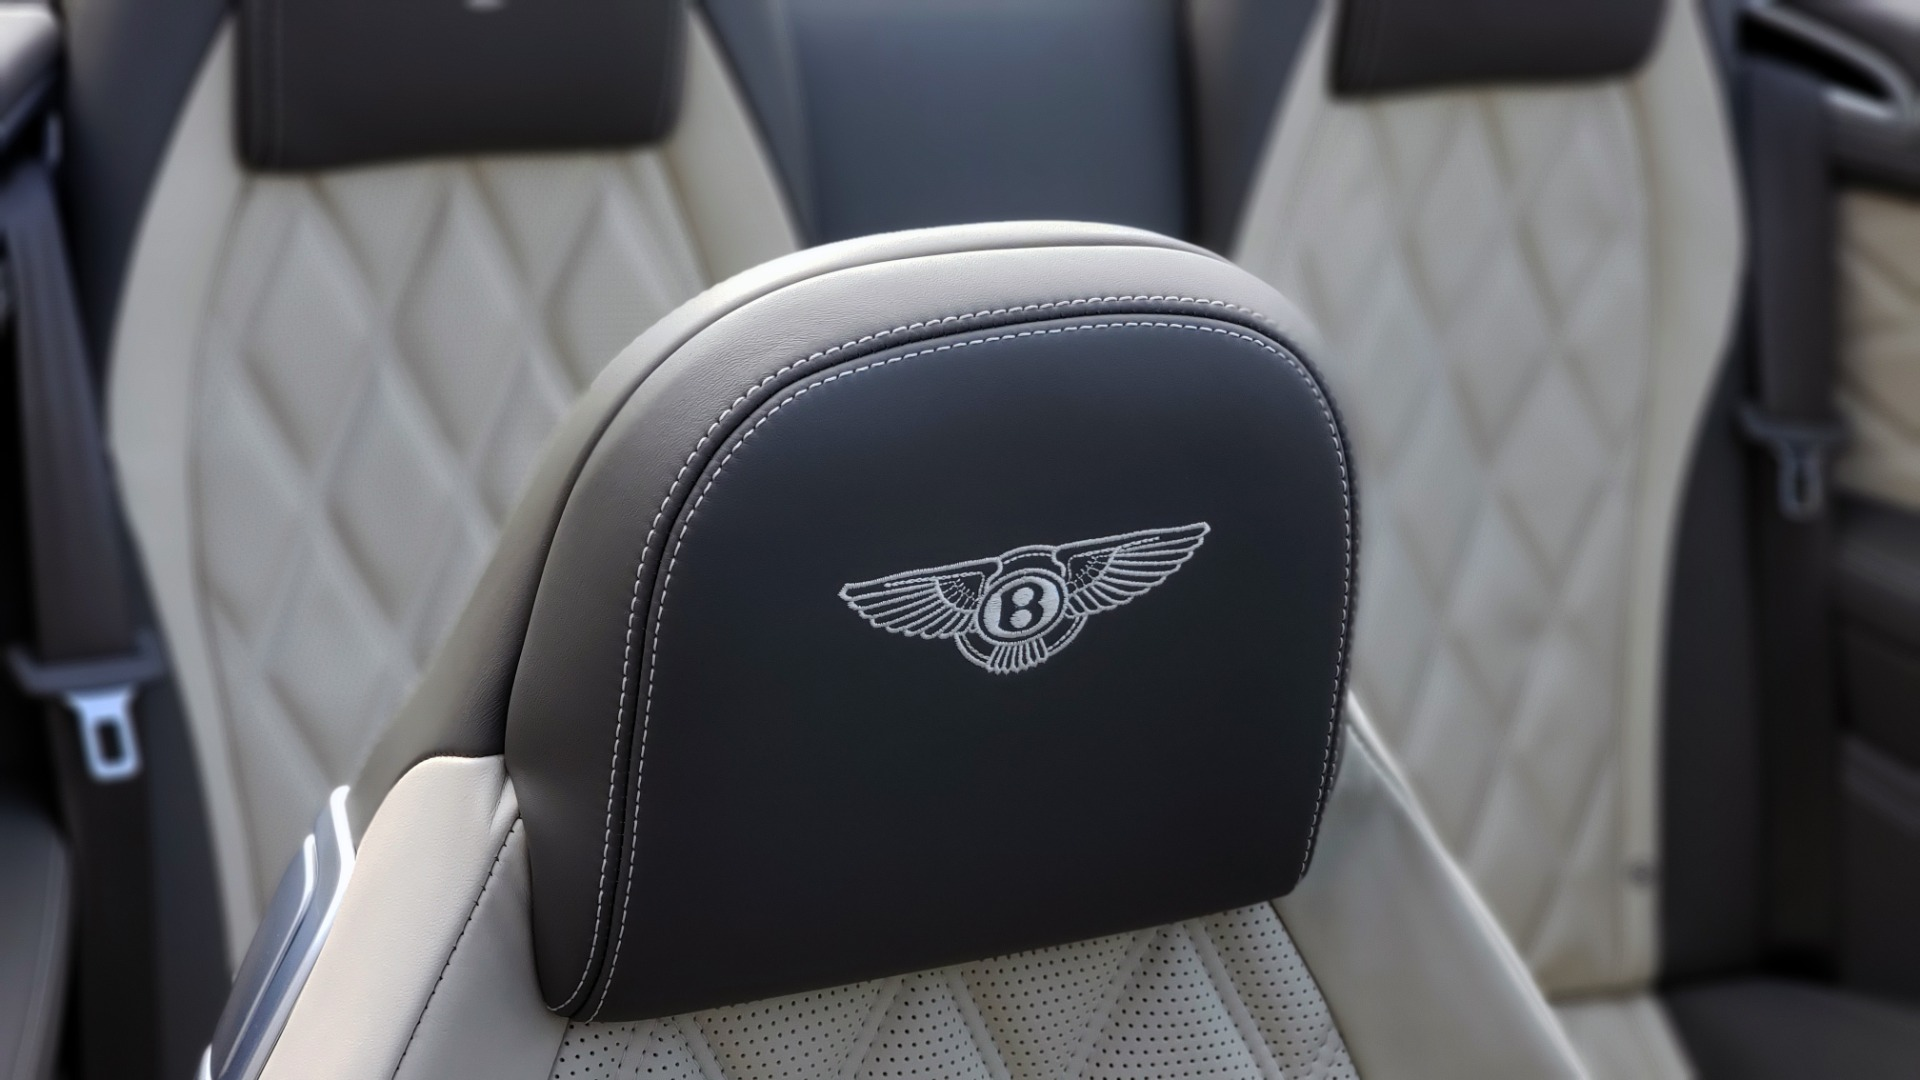 Used 2015 Bentley CONTINENTAL SPEED CONV / 6.0L W12 / NAV / VENT SEATS / REARVIEW for sale Sold at Formula Imports in Charlotte NC 28227 70